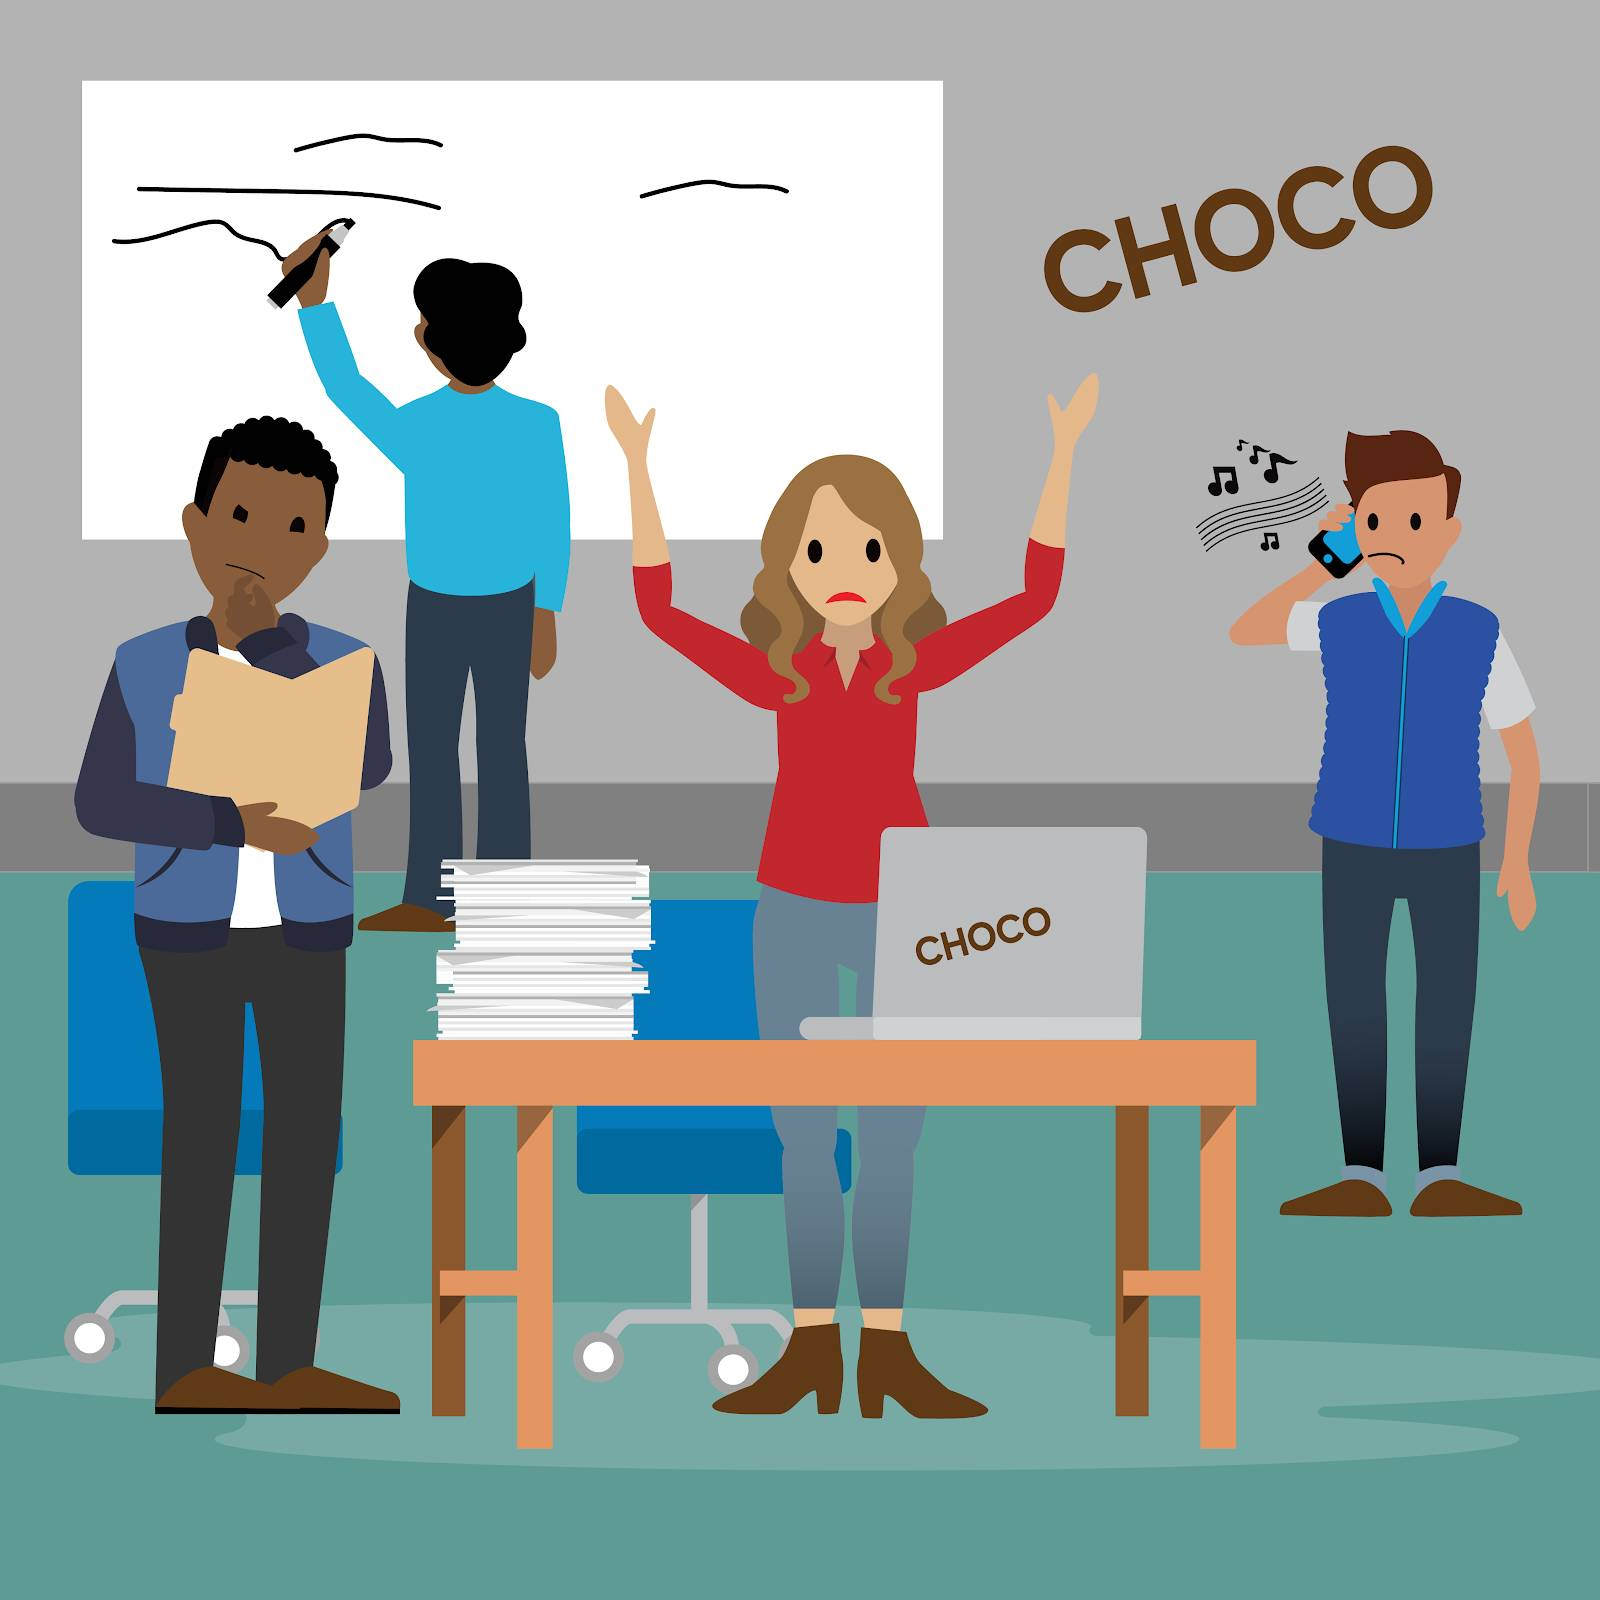 Emma, owner of Choco Chocolate Company, stands in the middle of a room looking perplexed with her hands in the air. Four other salespeople are in the room with her. One looks bored and is on hold on the phone, one has his hand on his chin and is sorting through a file folder looking lost, and the last is checking a white board looking confused.